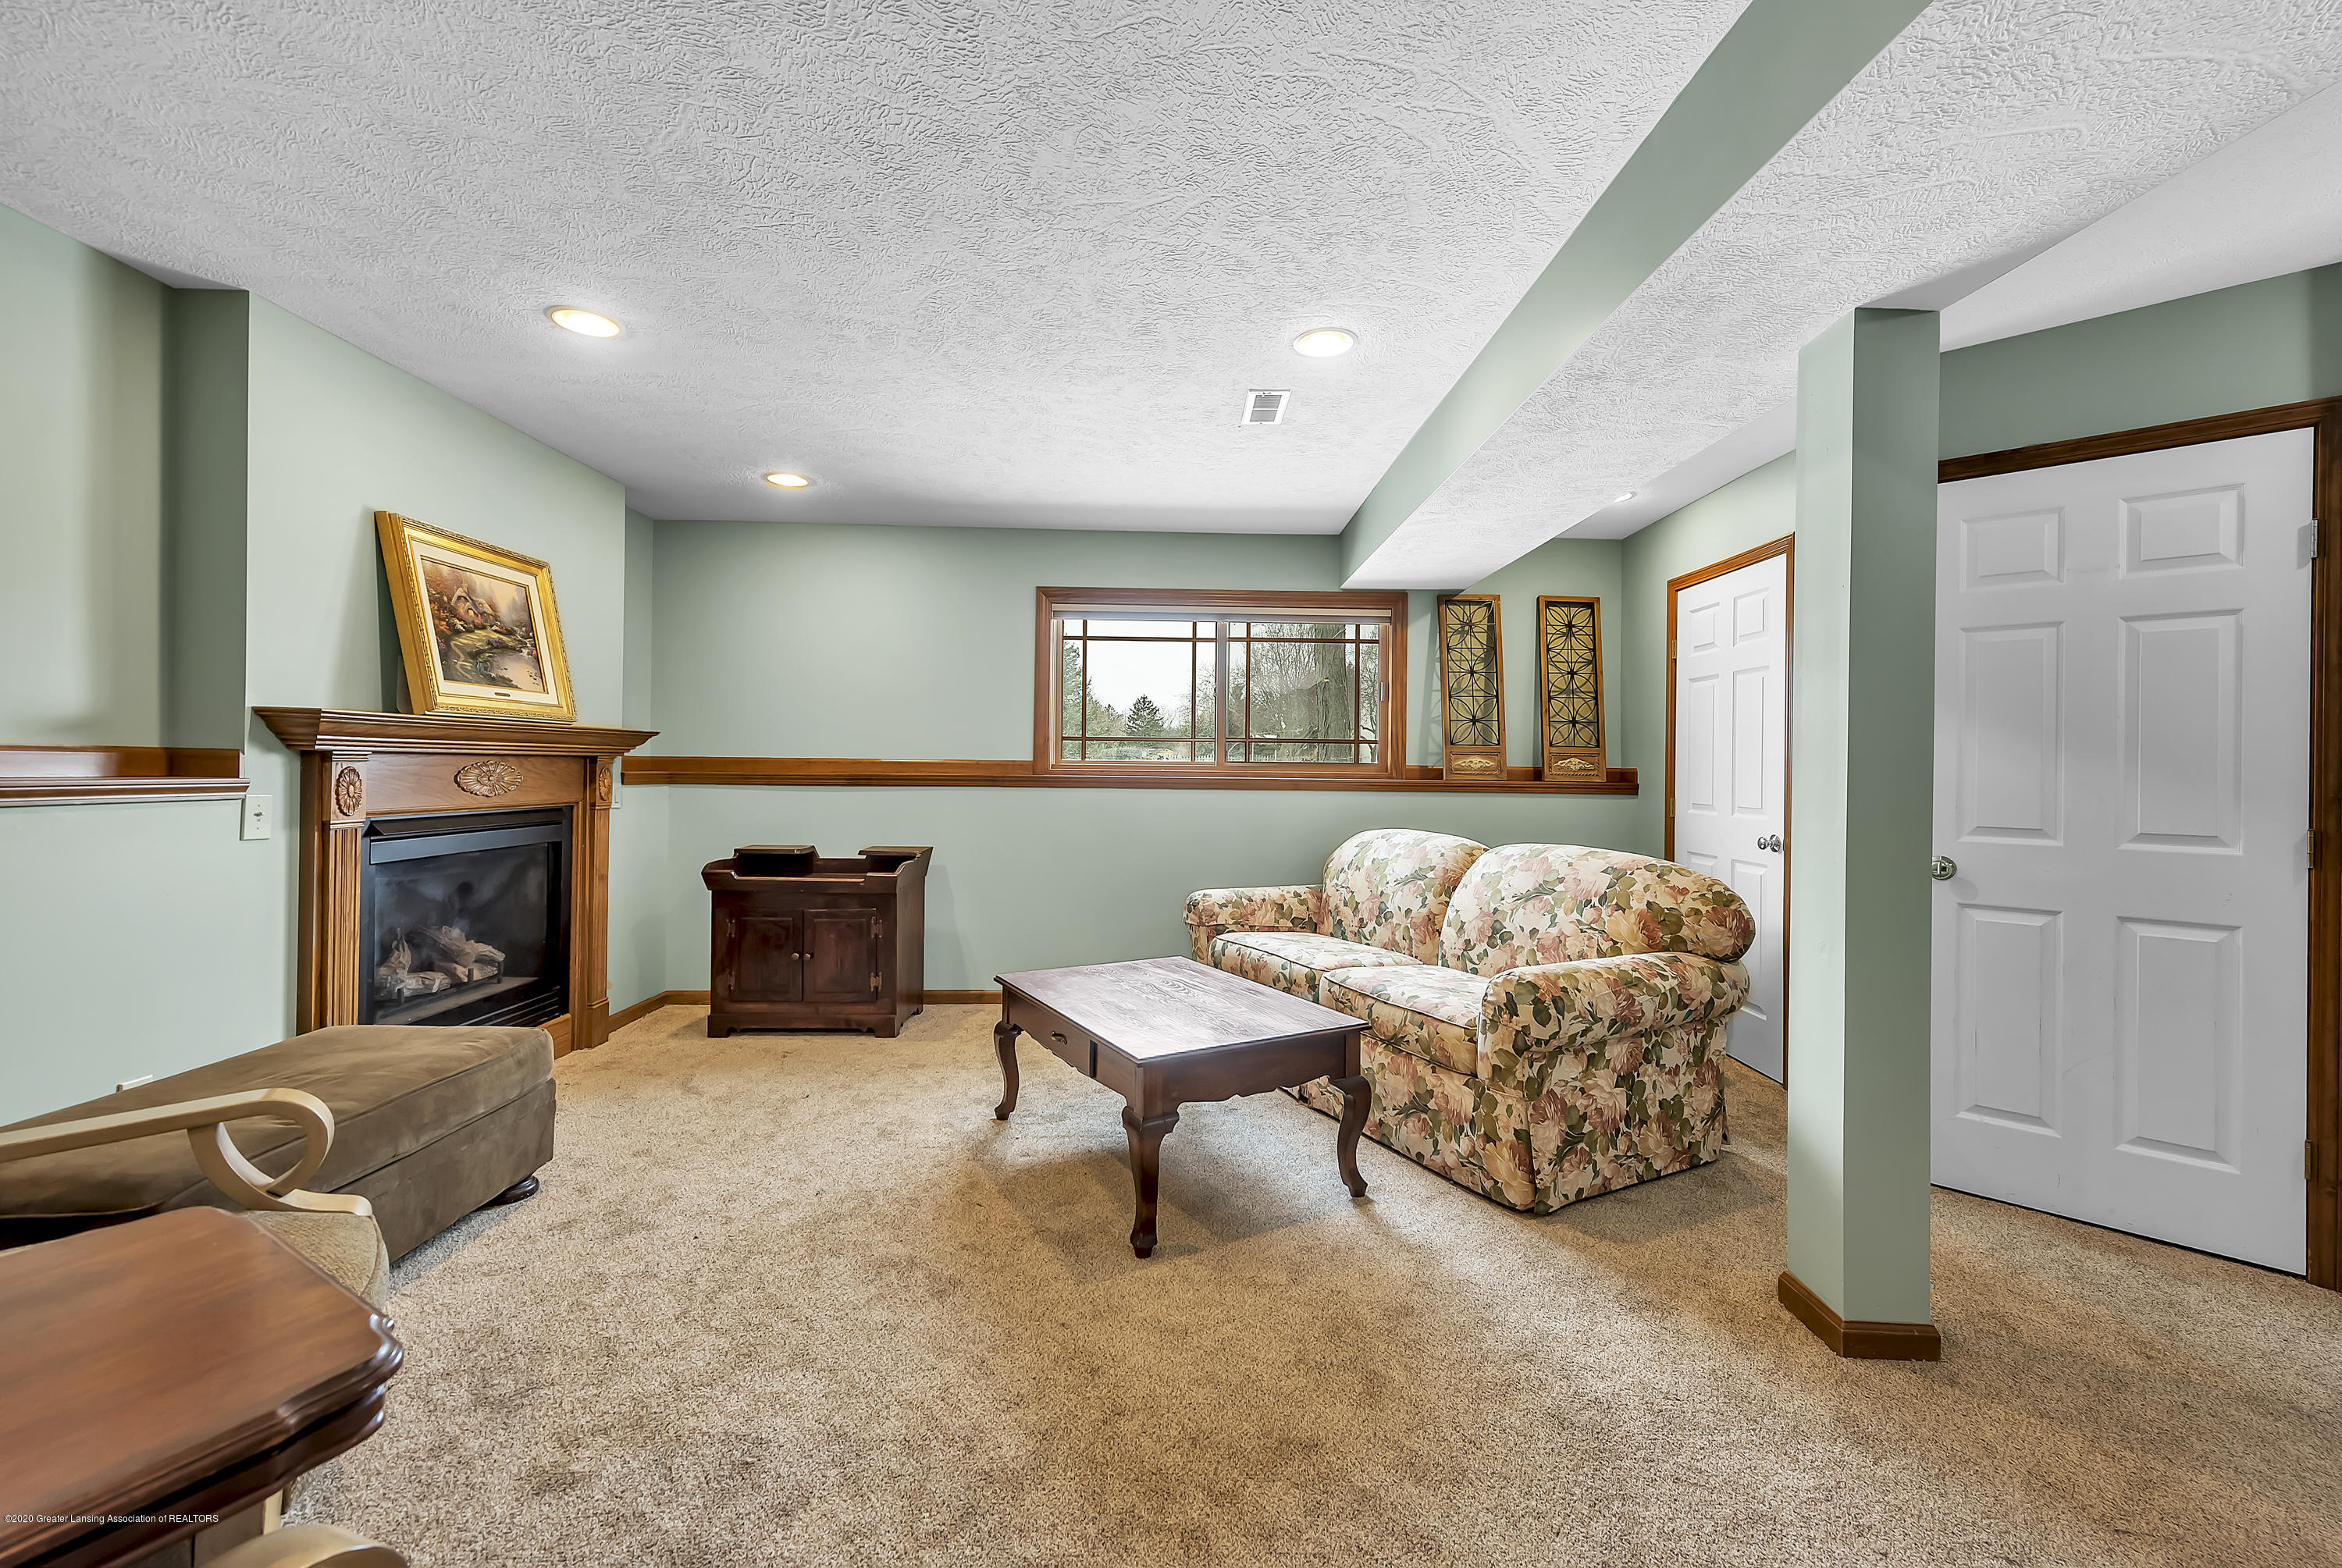 2450 Featherstone Dr - 2450-Featherstone-Dr-WindowStill-Real-Es - 24